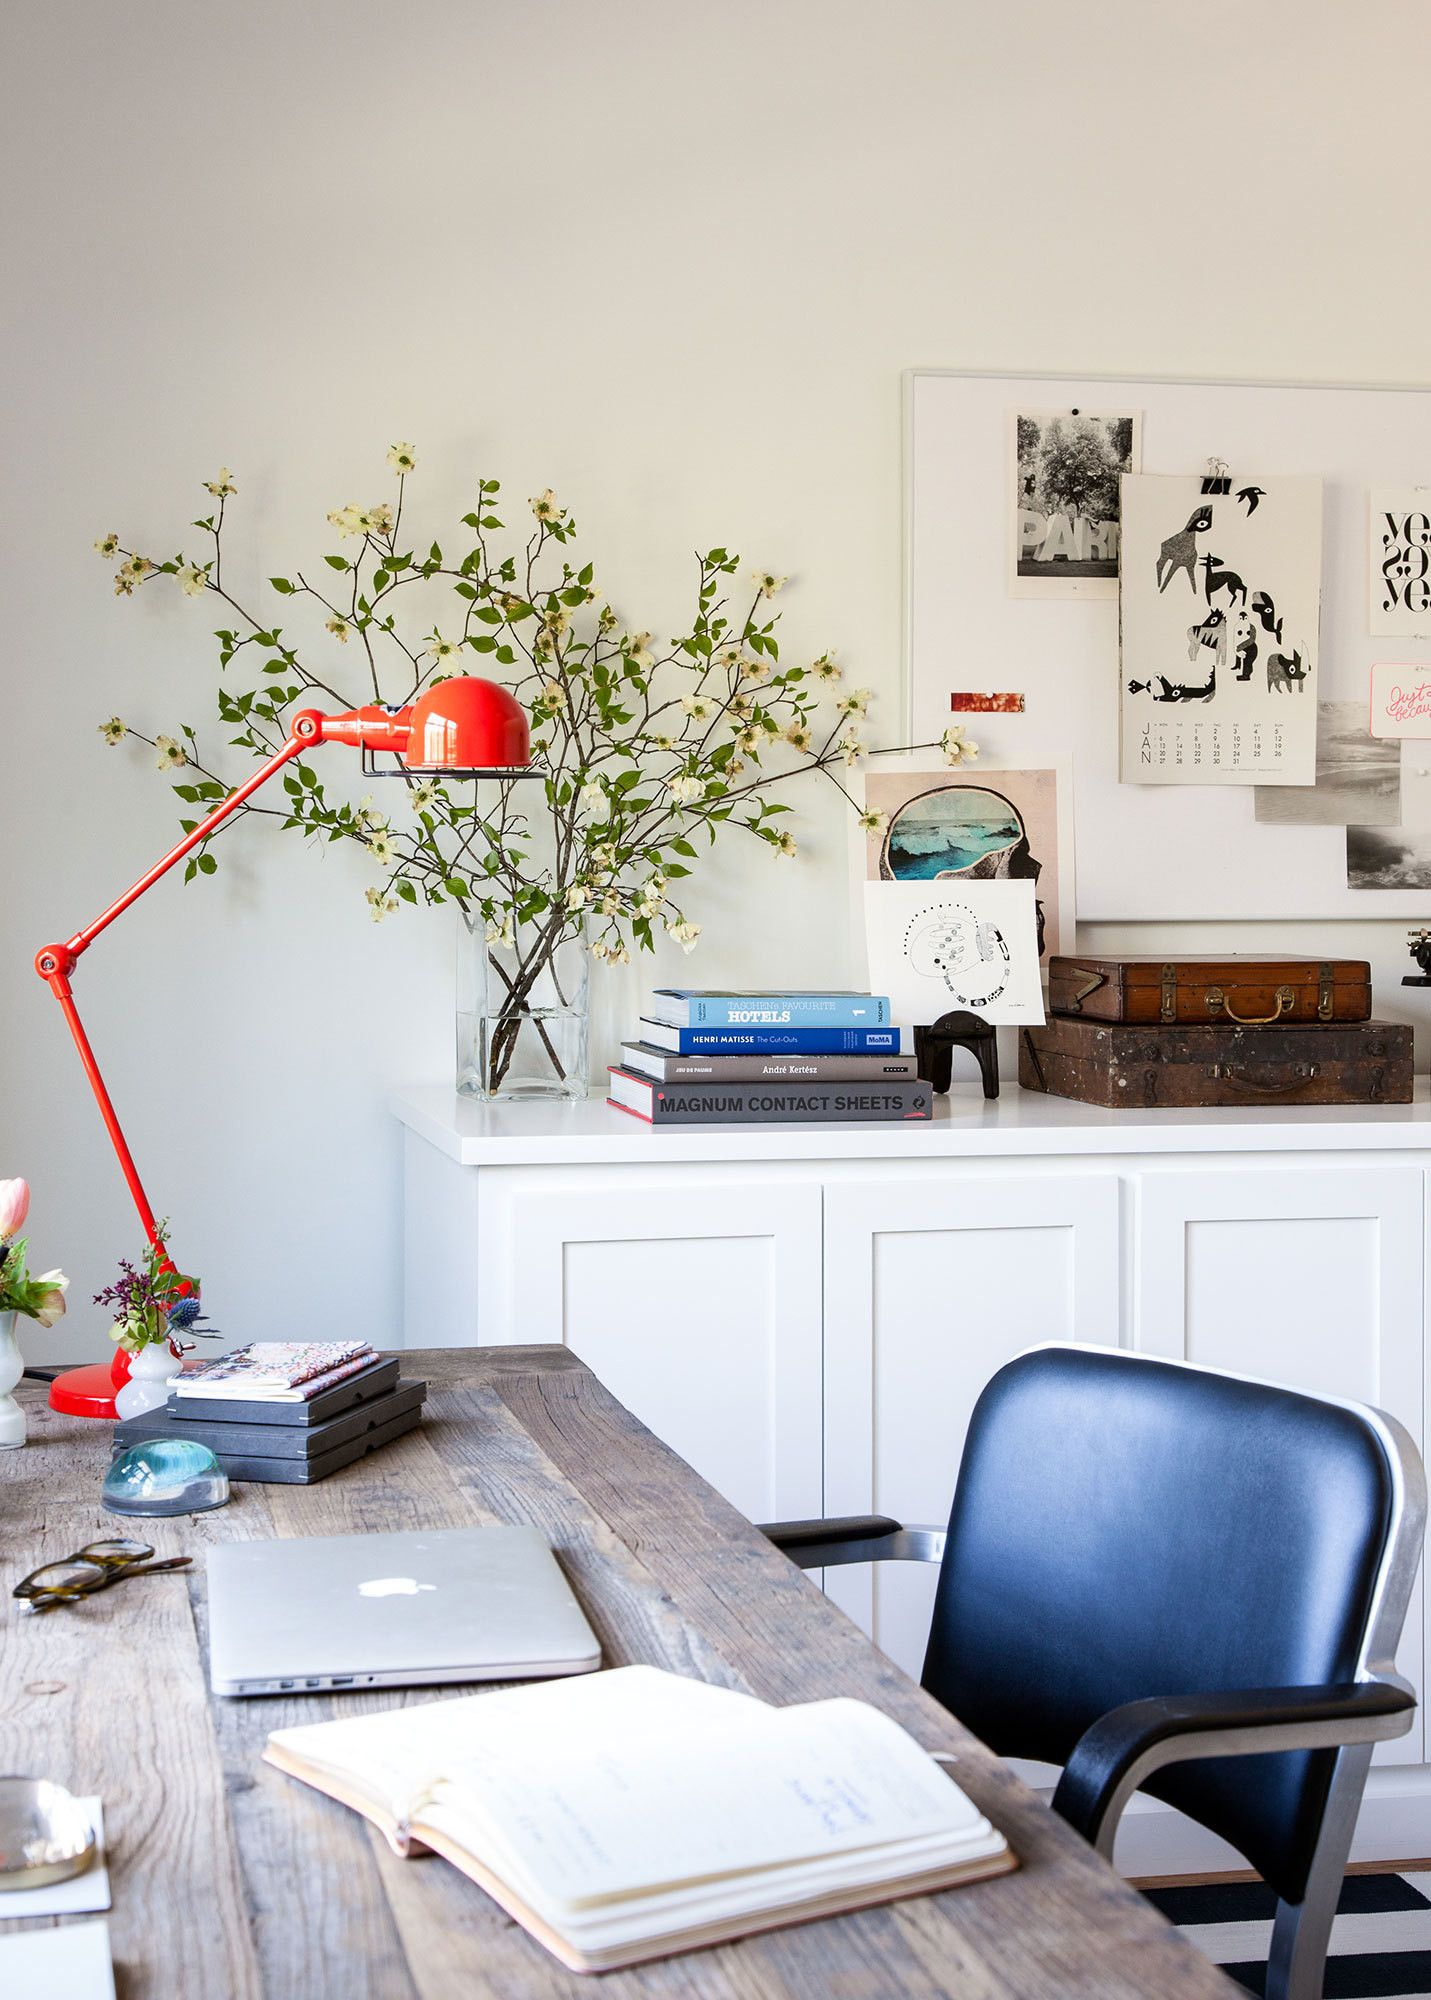 Home Tour Crowell Interiors Project In Nashville The Elm And Cast Metal Desk From Restoration Hardware Adds A Rustic Touch To Otherwise Spare